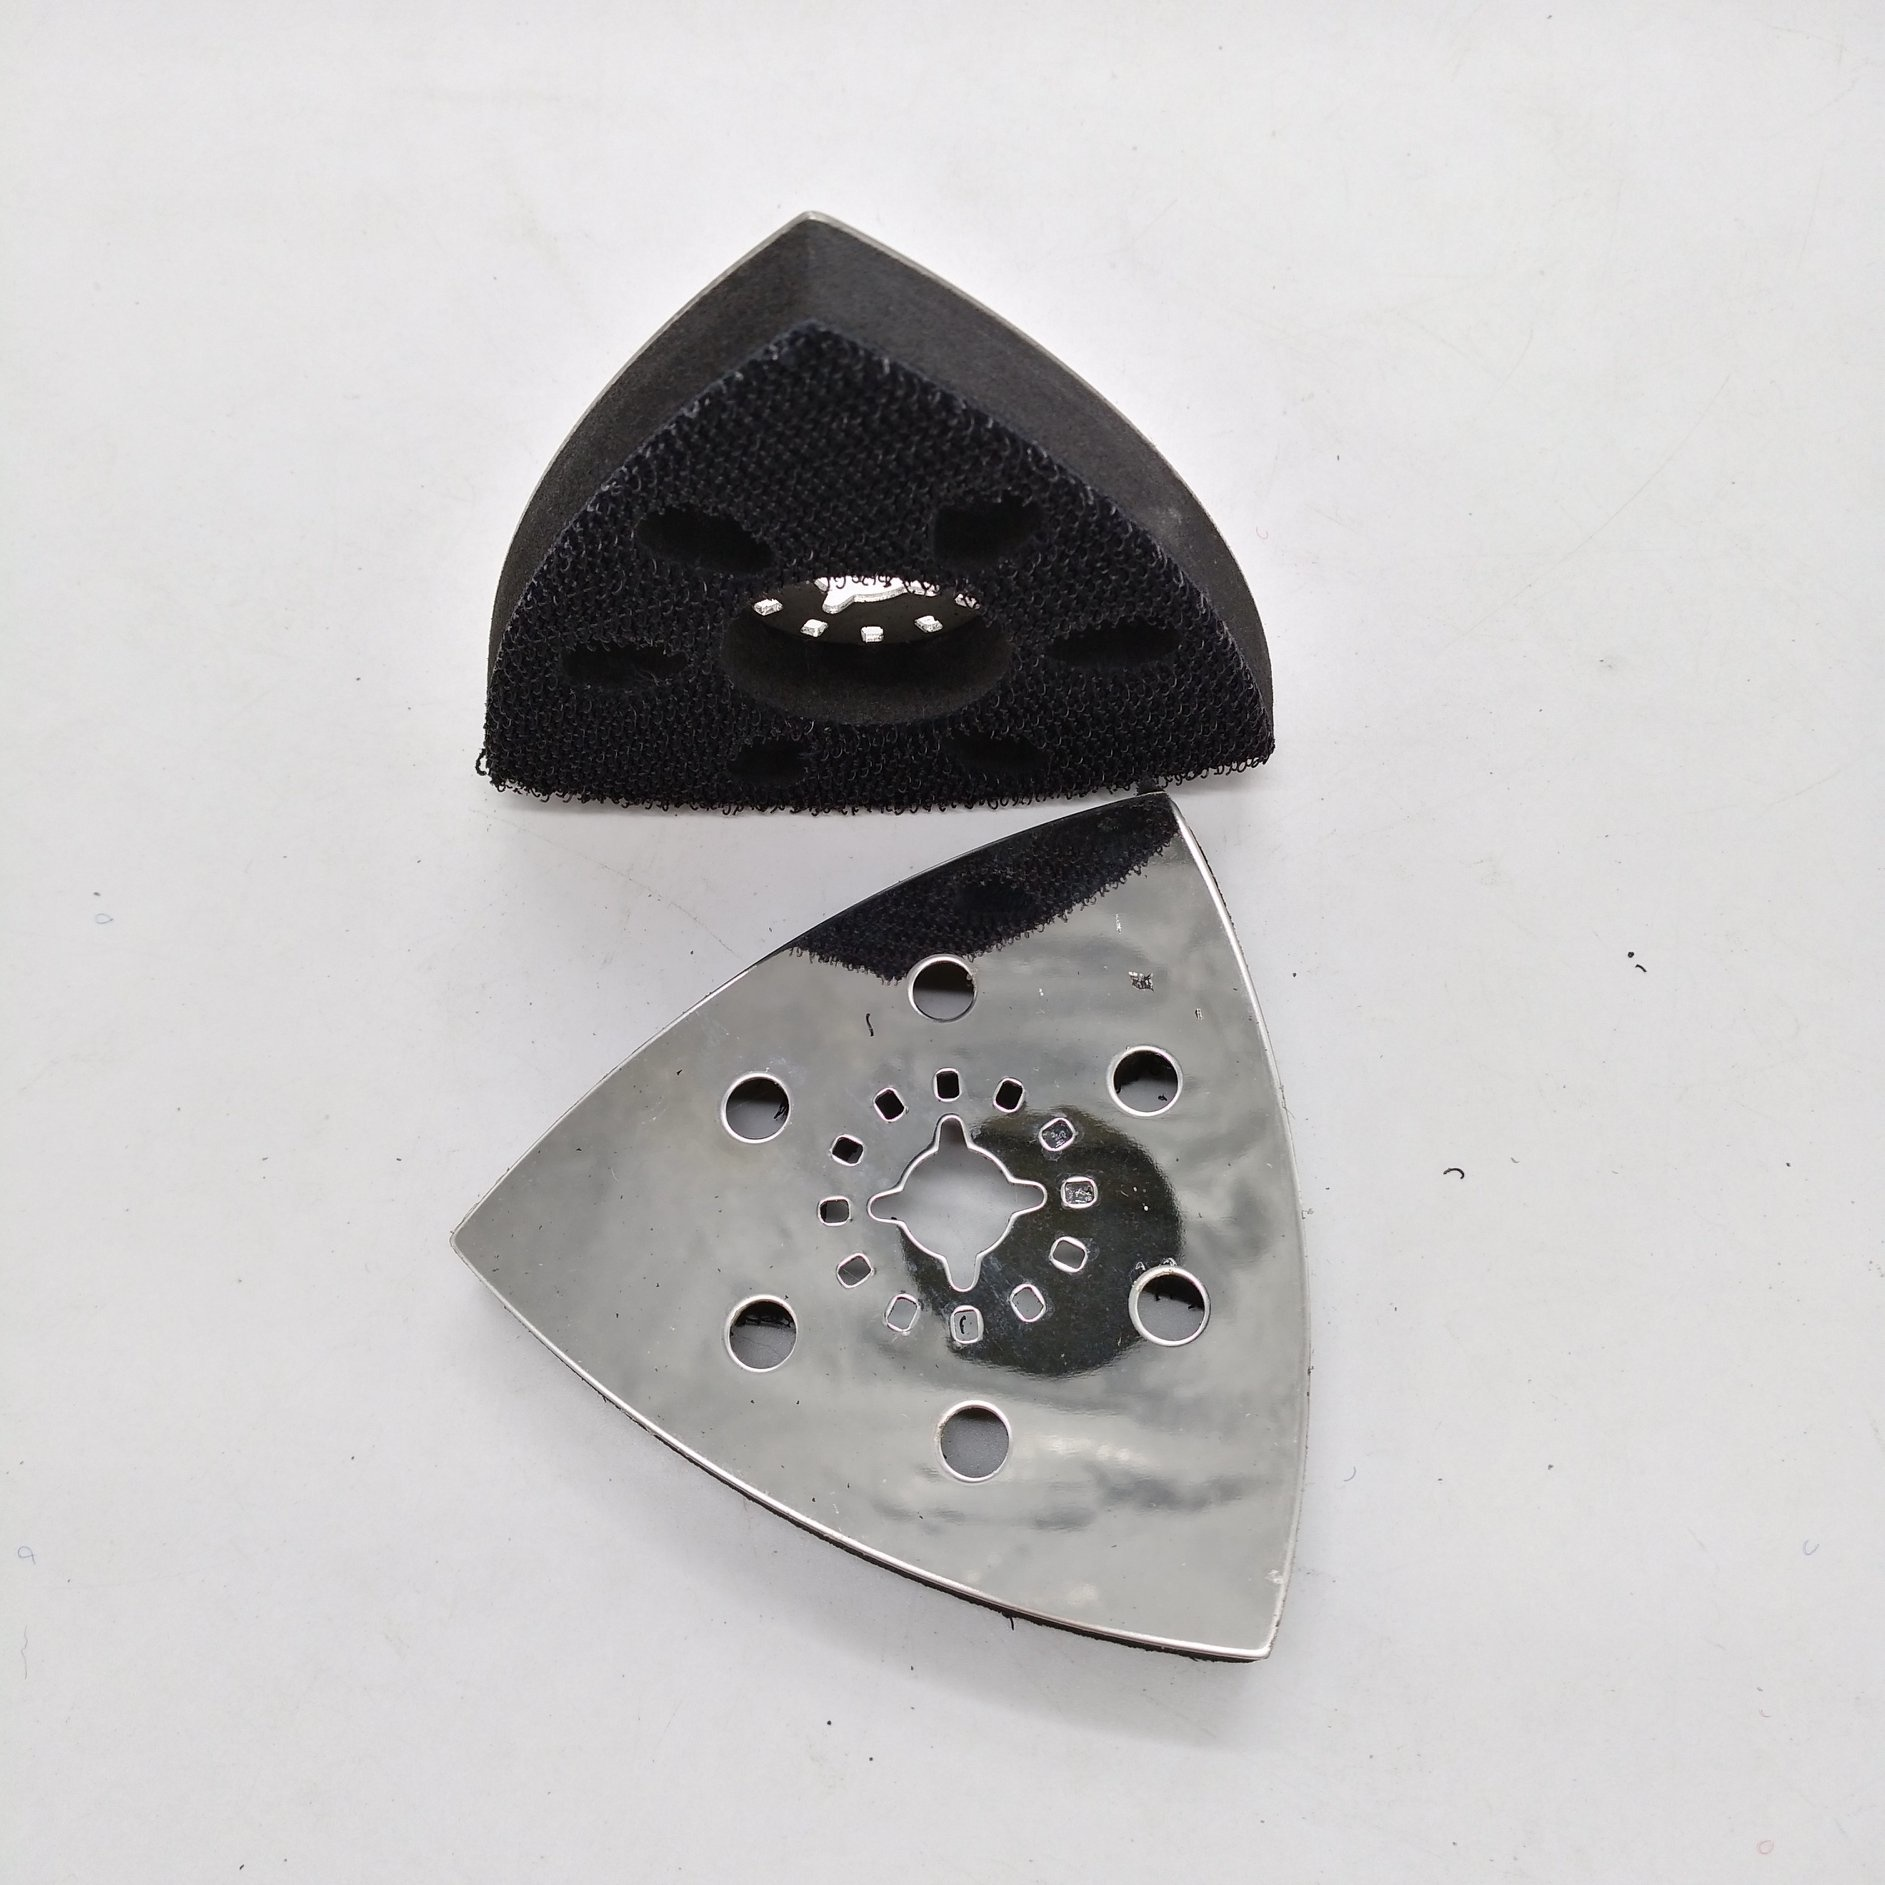 CRTE Triangle pad holder for CRTE pads